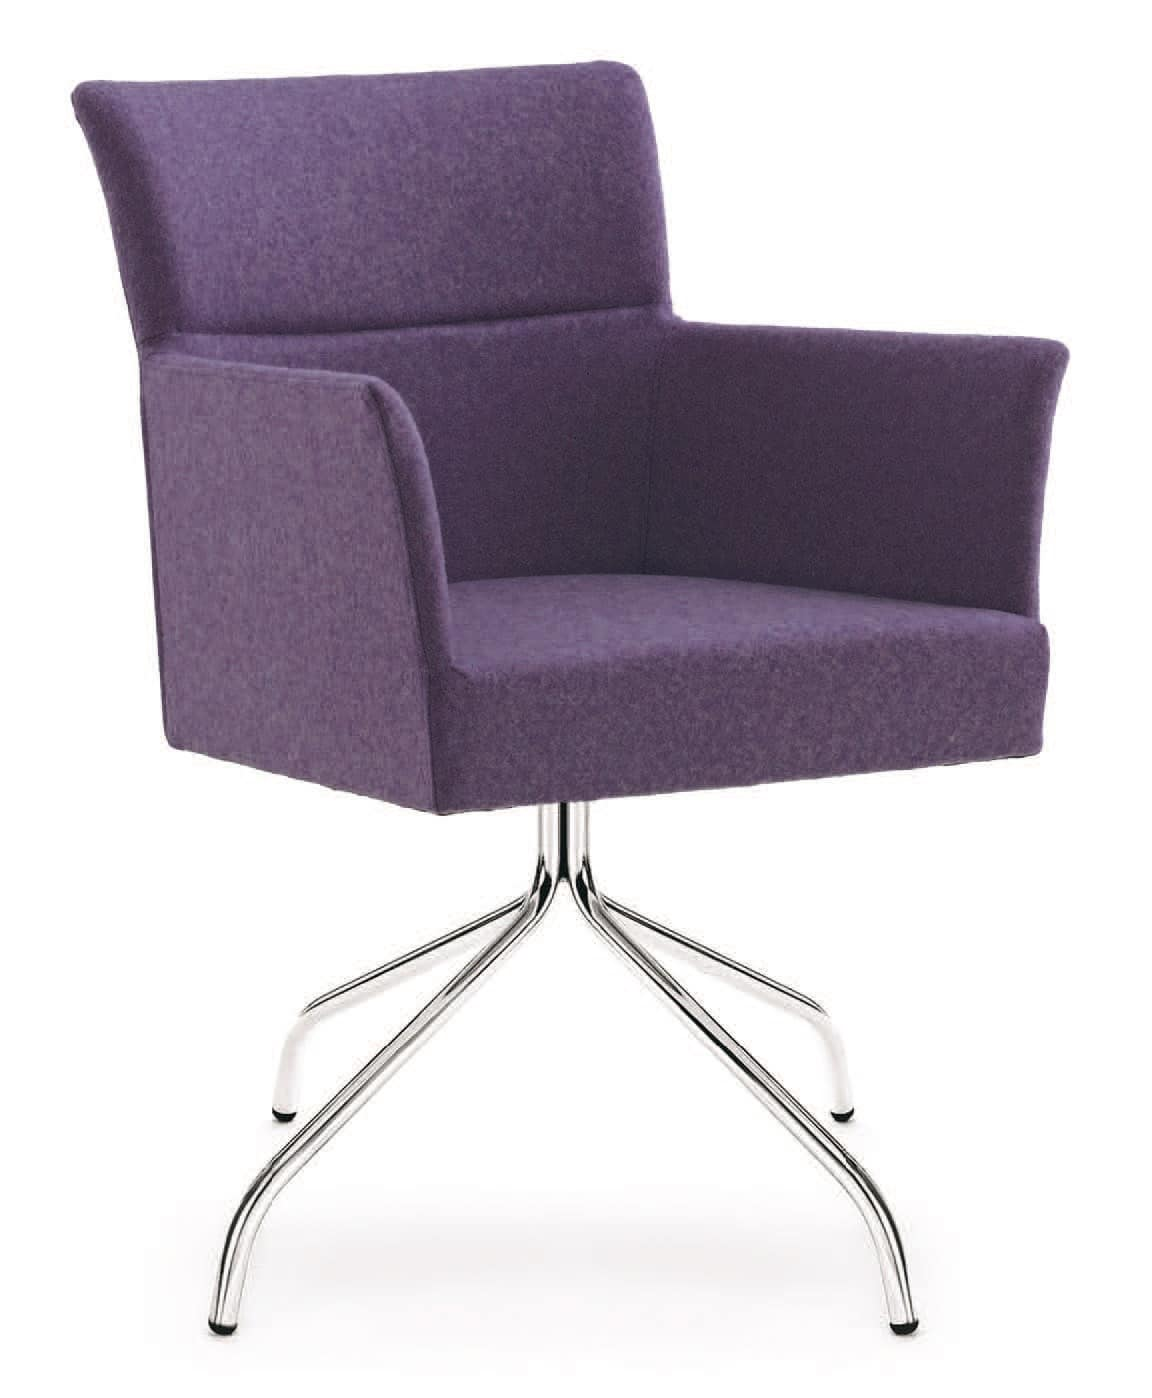 PL 5007, Armchair with chromed steel base, in various colors